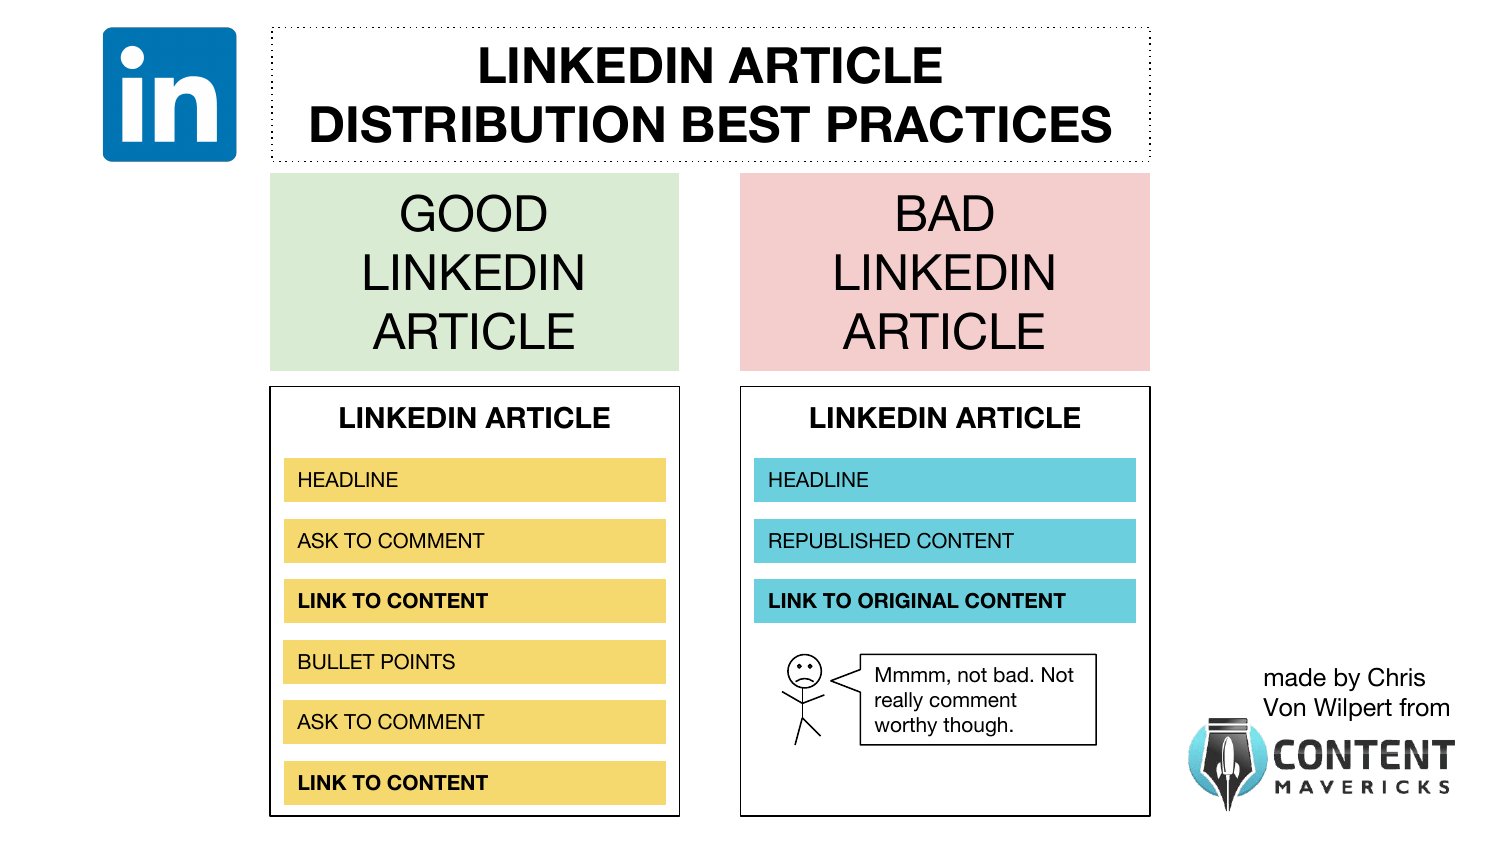 linkedin article content distribution best practices image